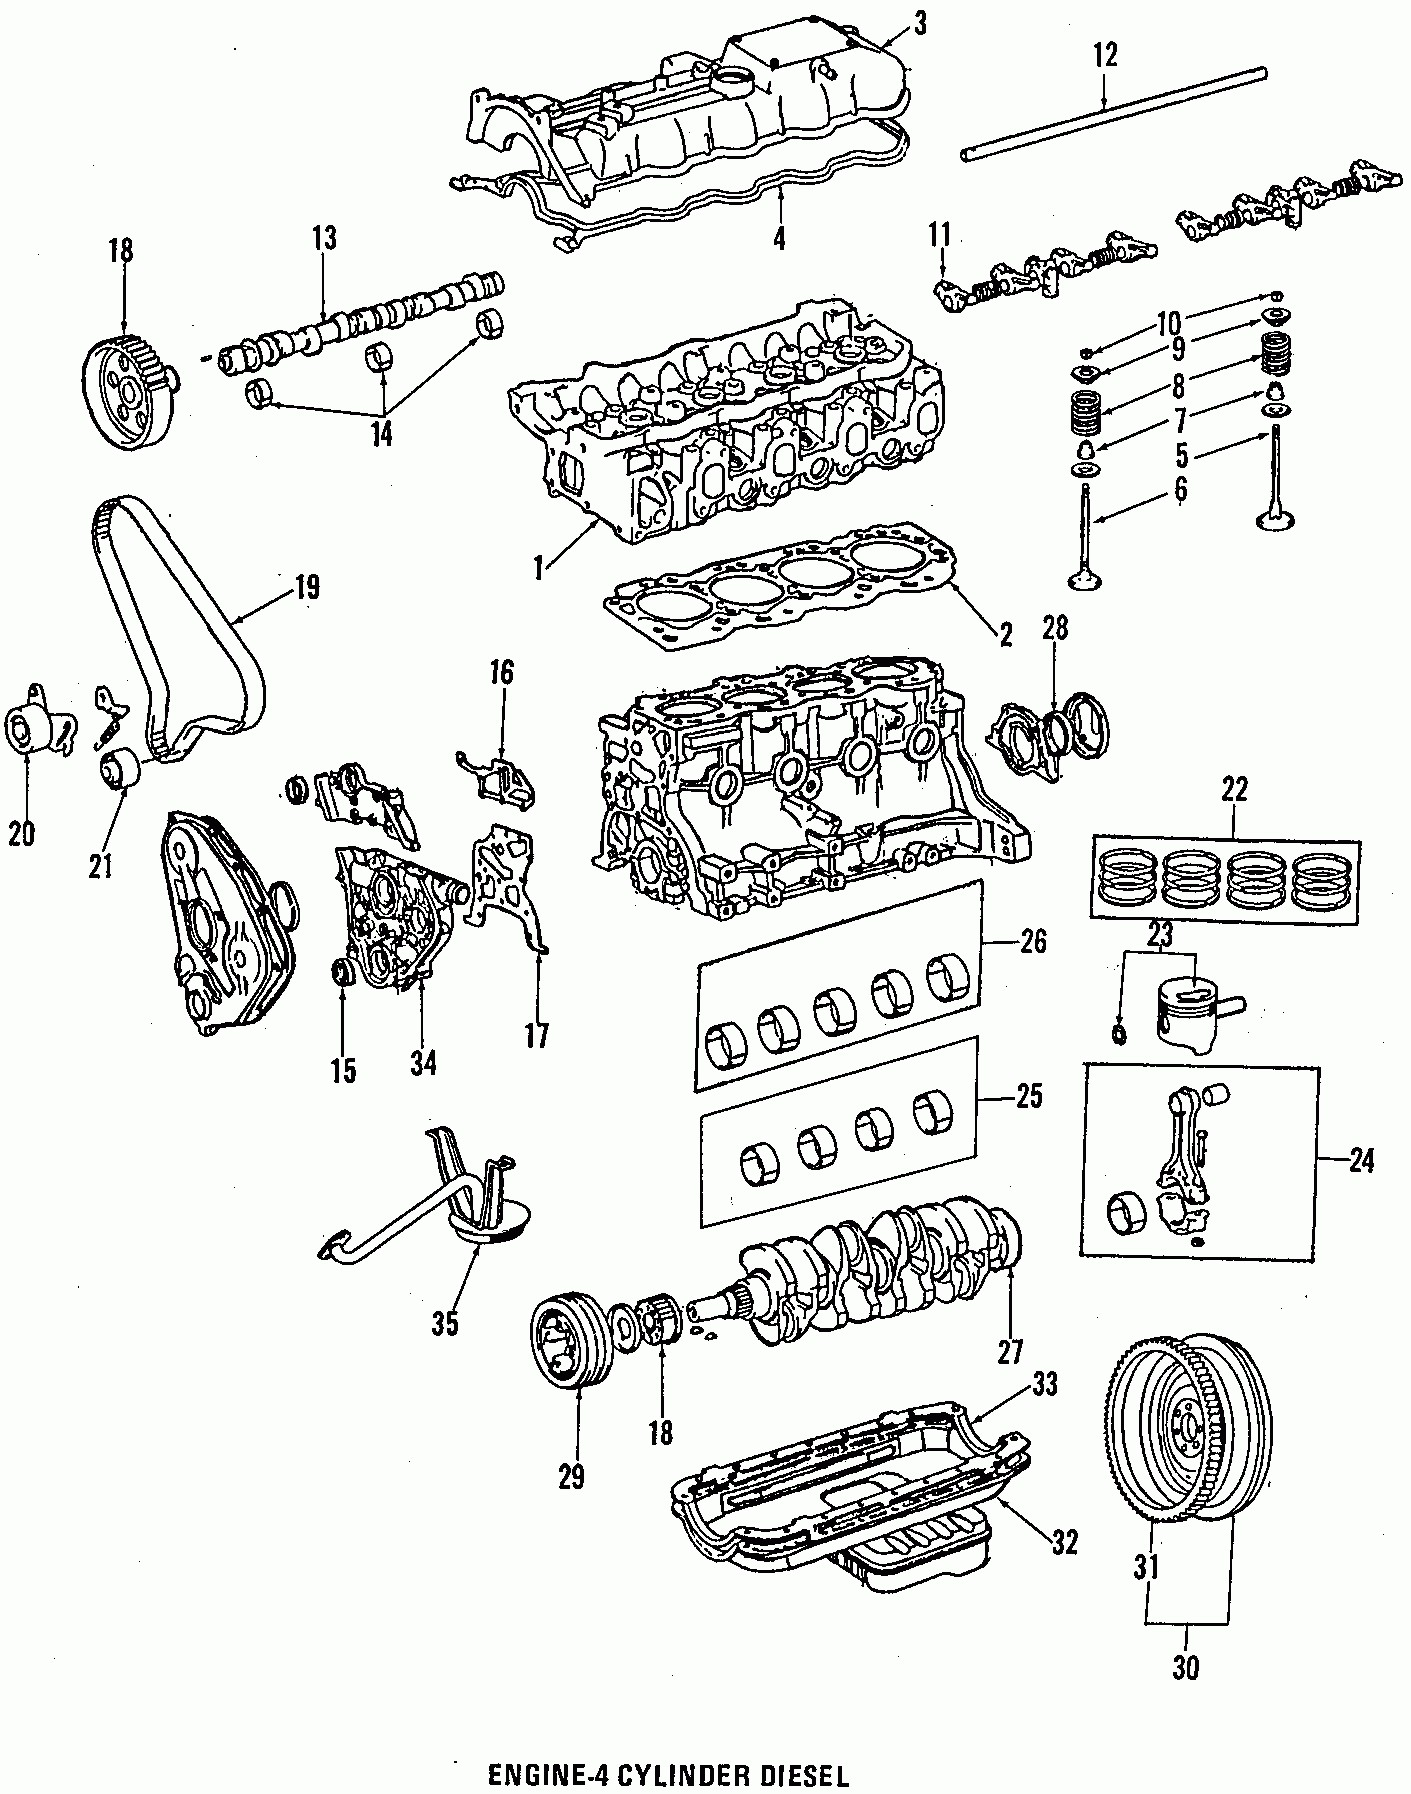 2004 Toyota Highlander Parts Diagram Geek